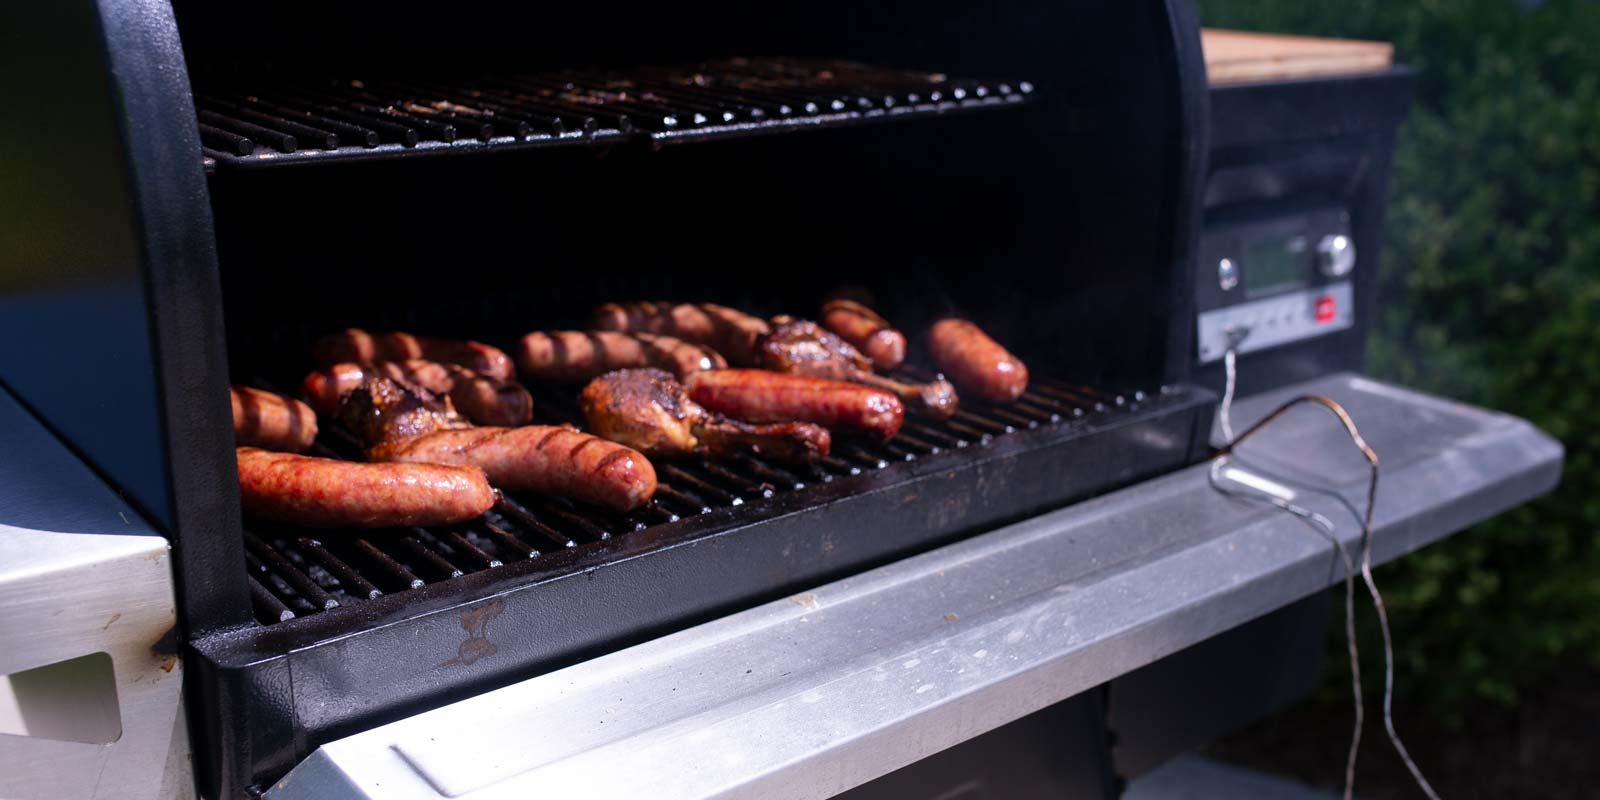 Hot dogs grilling on a traeger